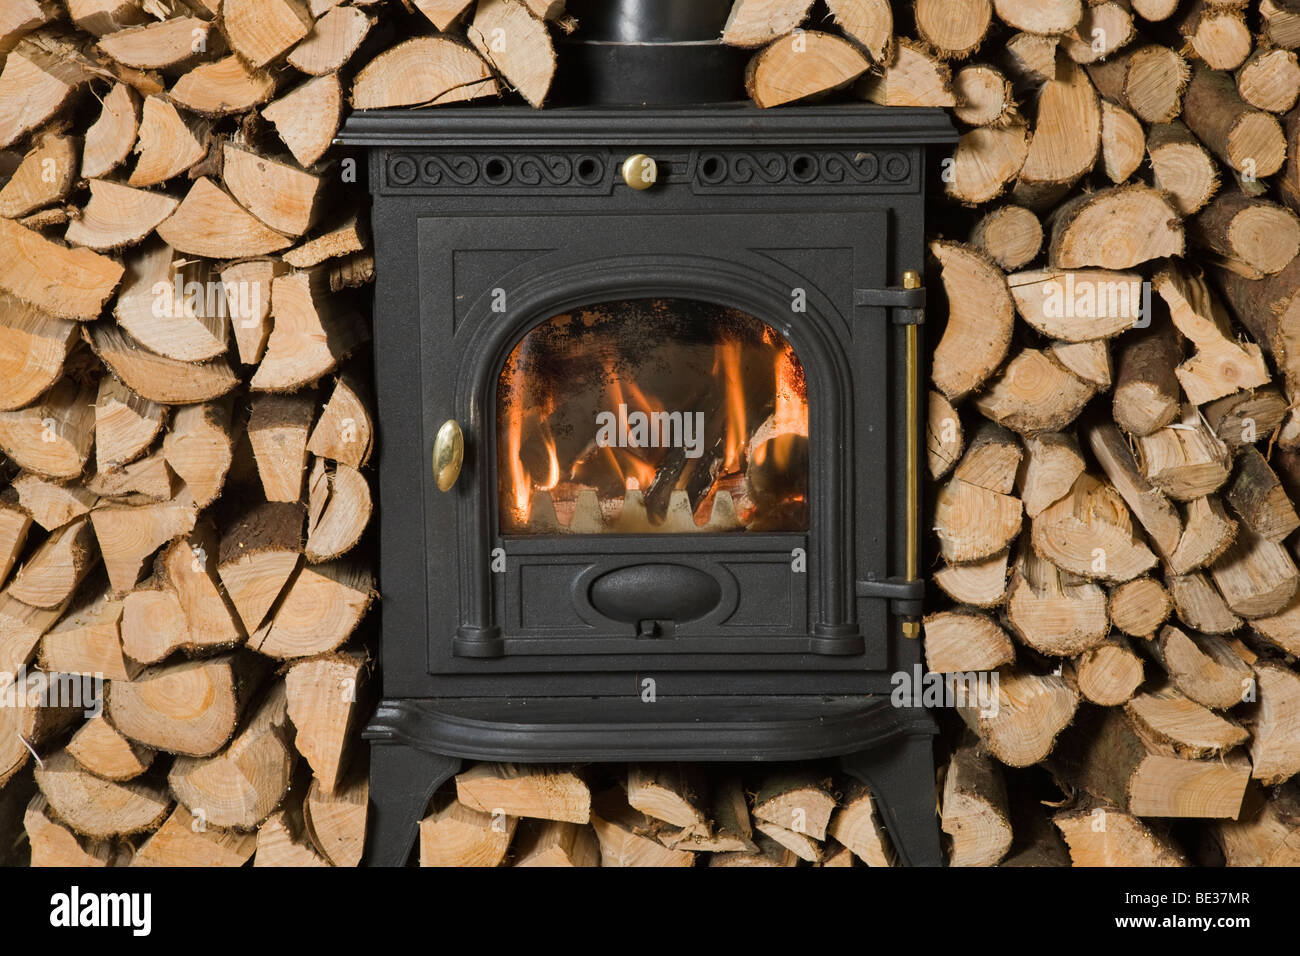 Wood burning stove surrounded by chopped and stacked firewood ready for burning - Stock Image